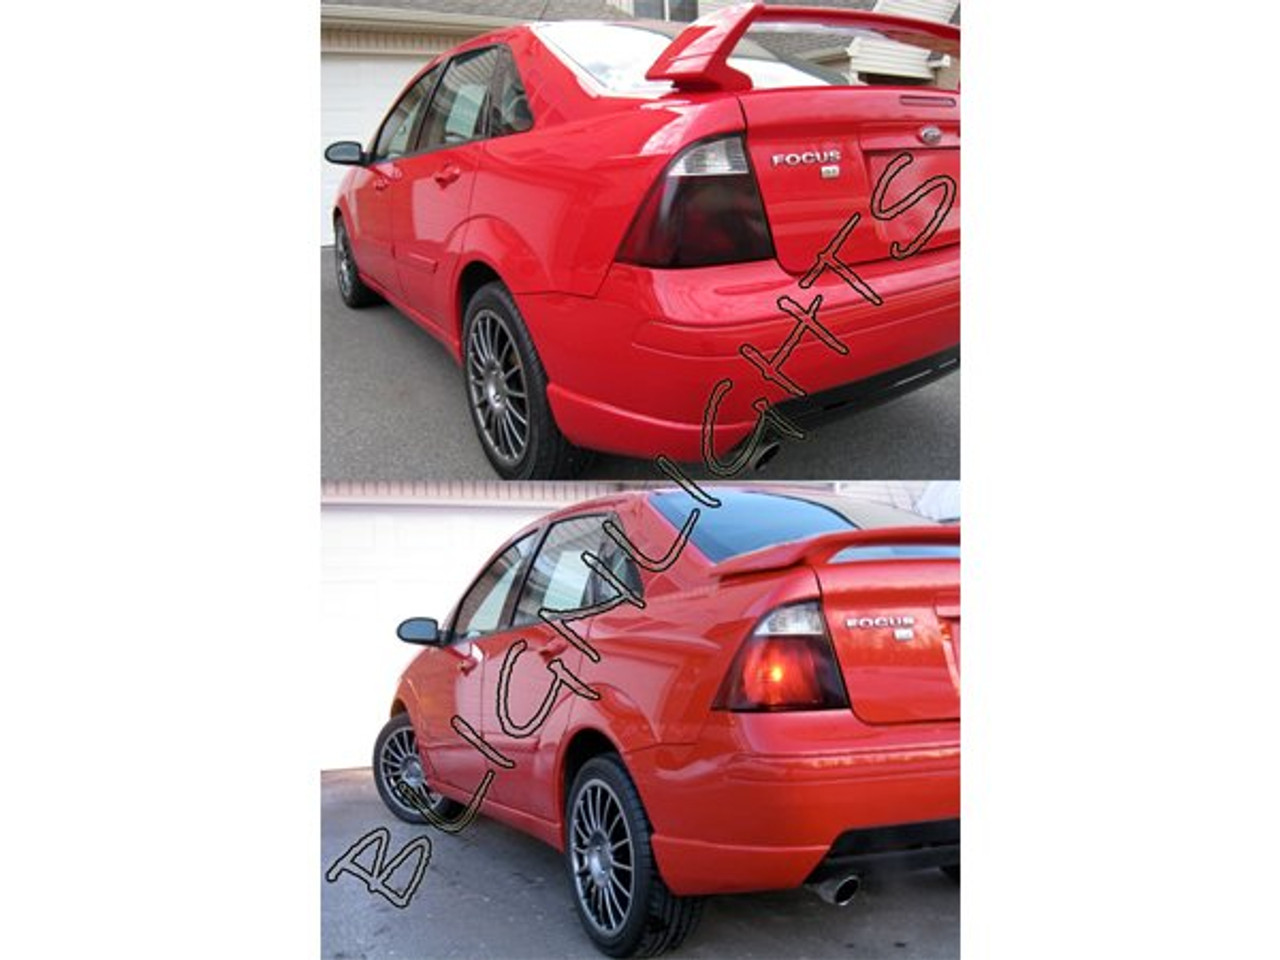 05-11 Toyota Yaris 2DR Tinted Smoked Tail Lamps Lights Overlays Film Protection